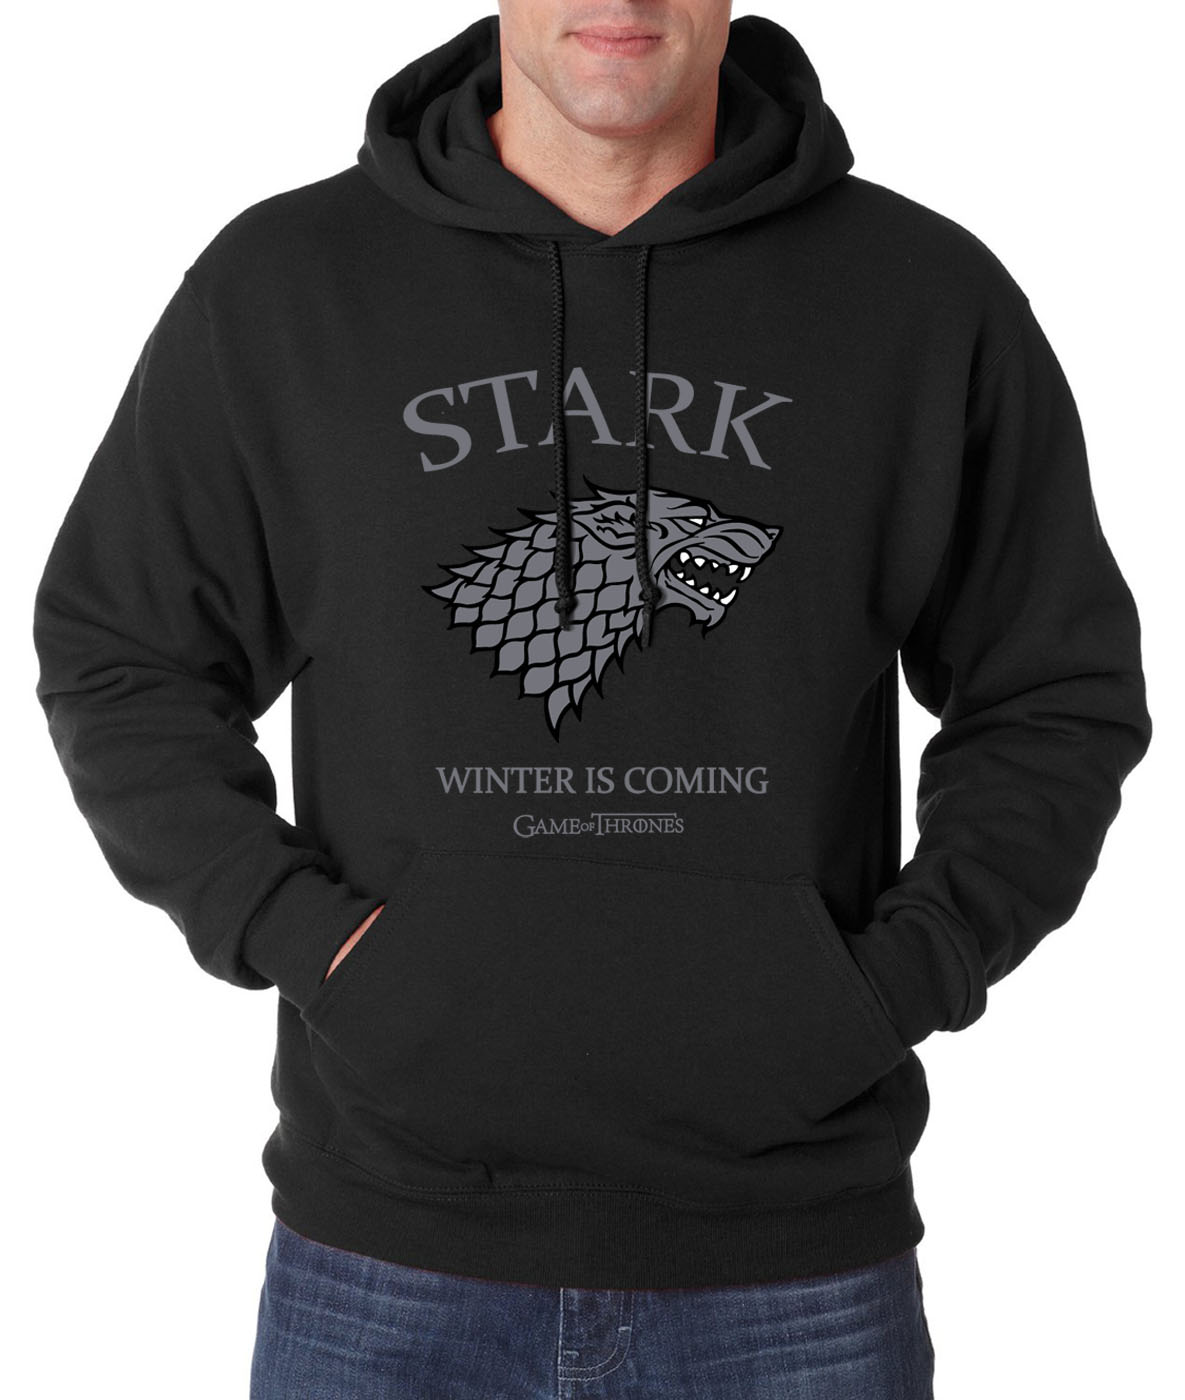 Game of Thrones House Stark Winter Is Coming Printed Hoodies Men 2017 Spring Hoodie Sweatshirt Men